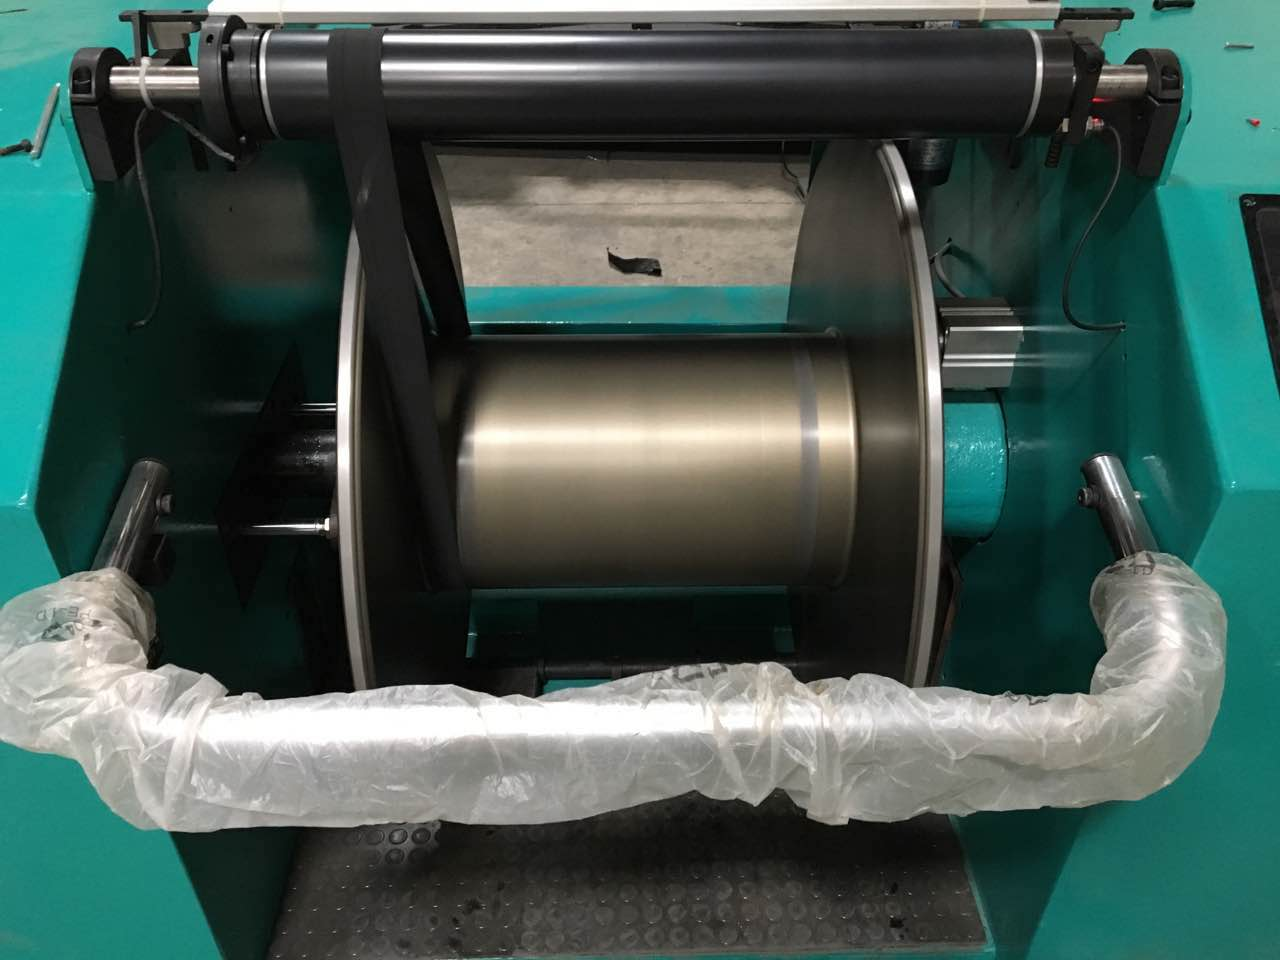 HY-VT001 Warping machine for tape yarn(700 creels)-3.jpg